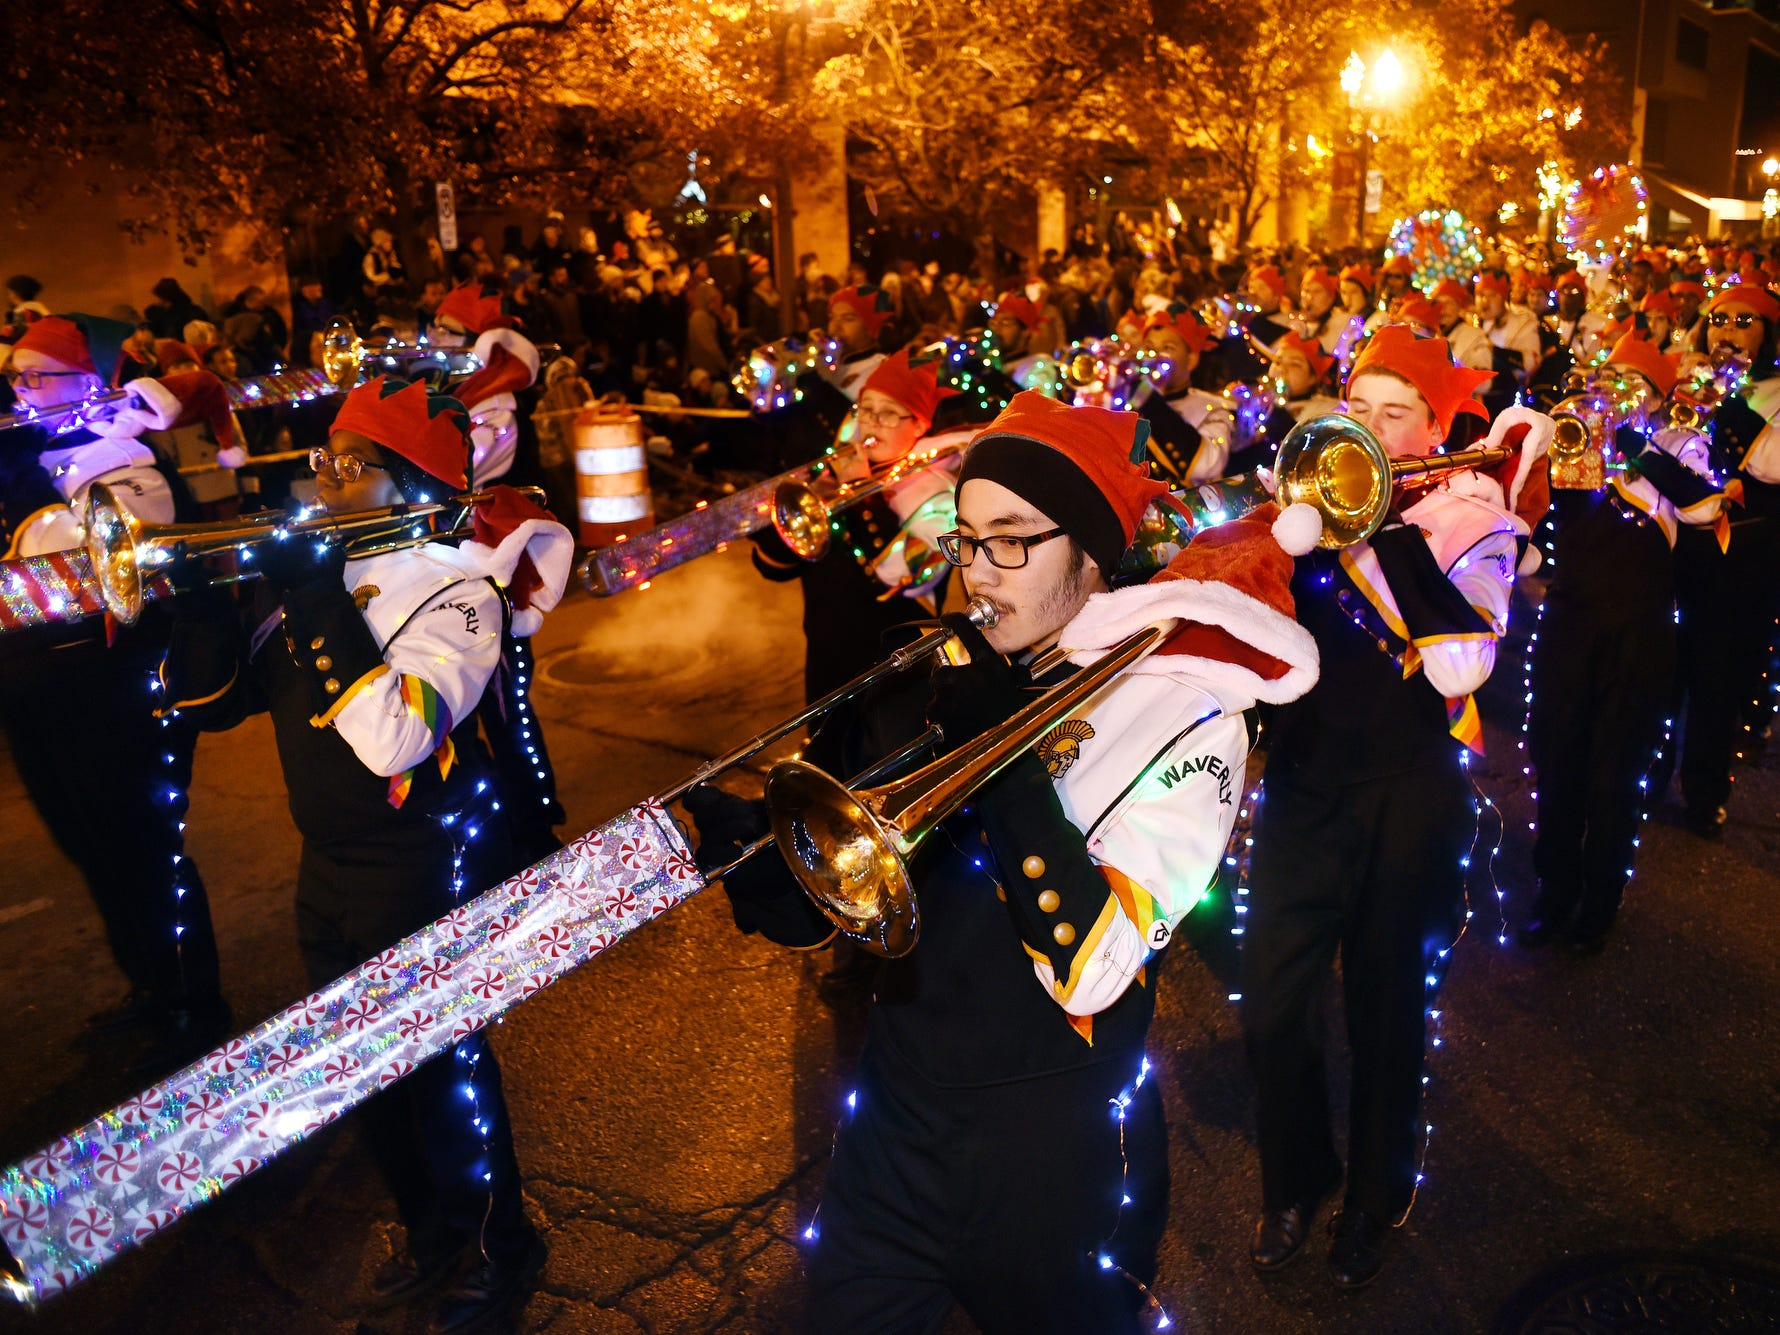 Members of the Waverly High School band play while marching during the Silver Bells in the City Electric Light Parade on Friday, Nov. 16, 2018, in downtown Lansing.